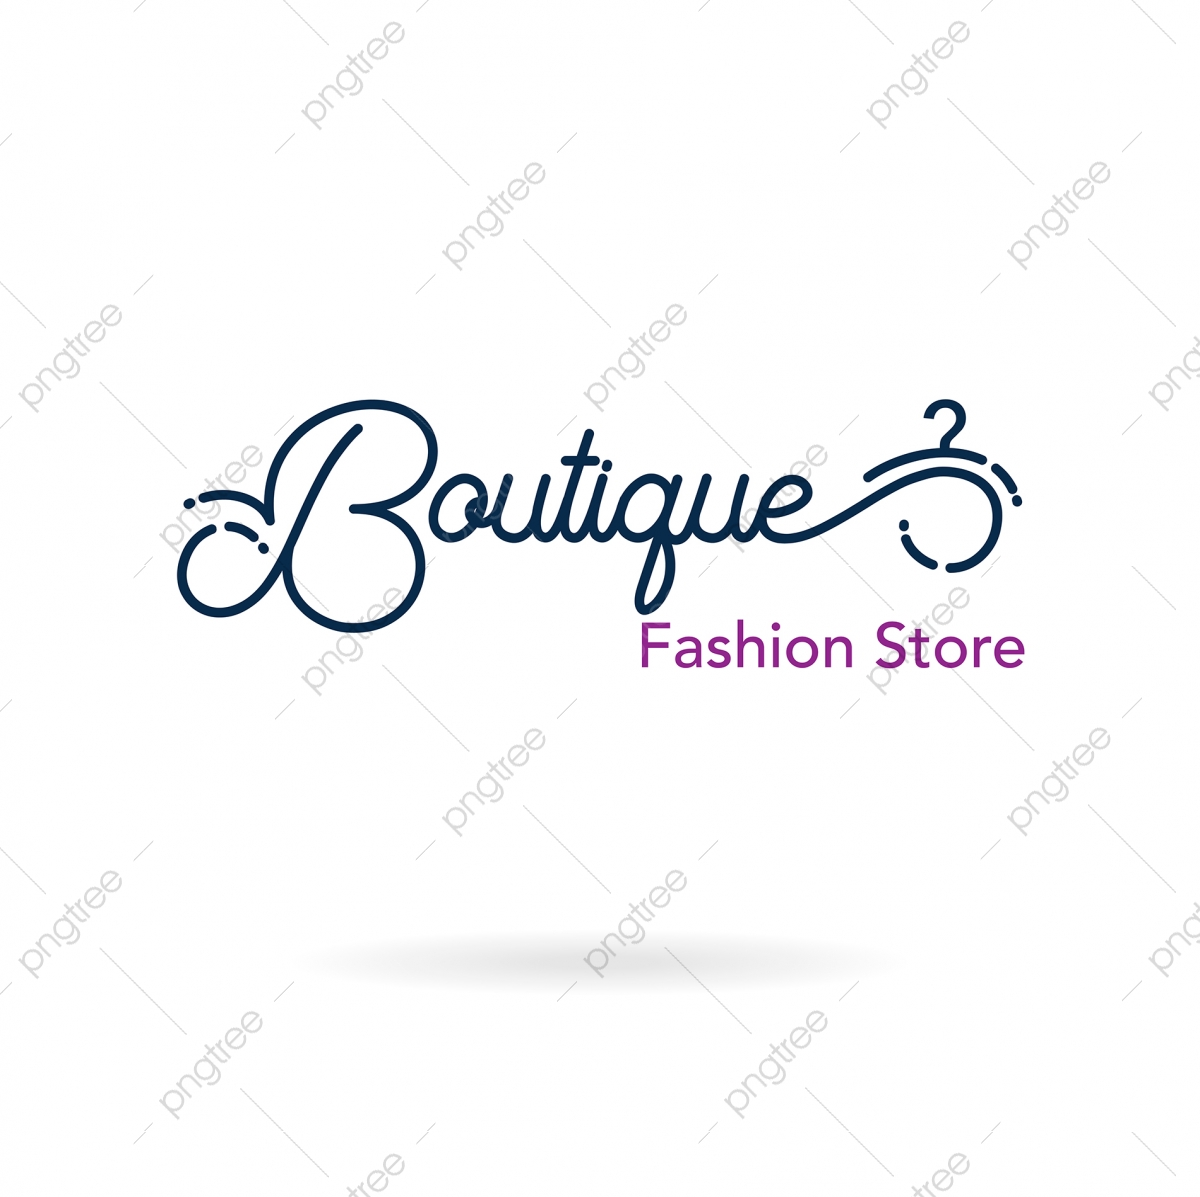 Fashion Simple Logo Design Vintage And Modern Style Vintage Style Free Logo Design Template Template For Free Download On Pngtree